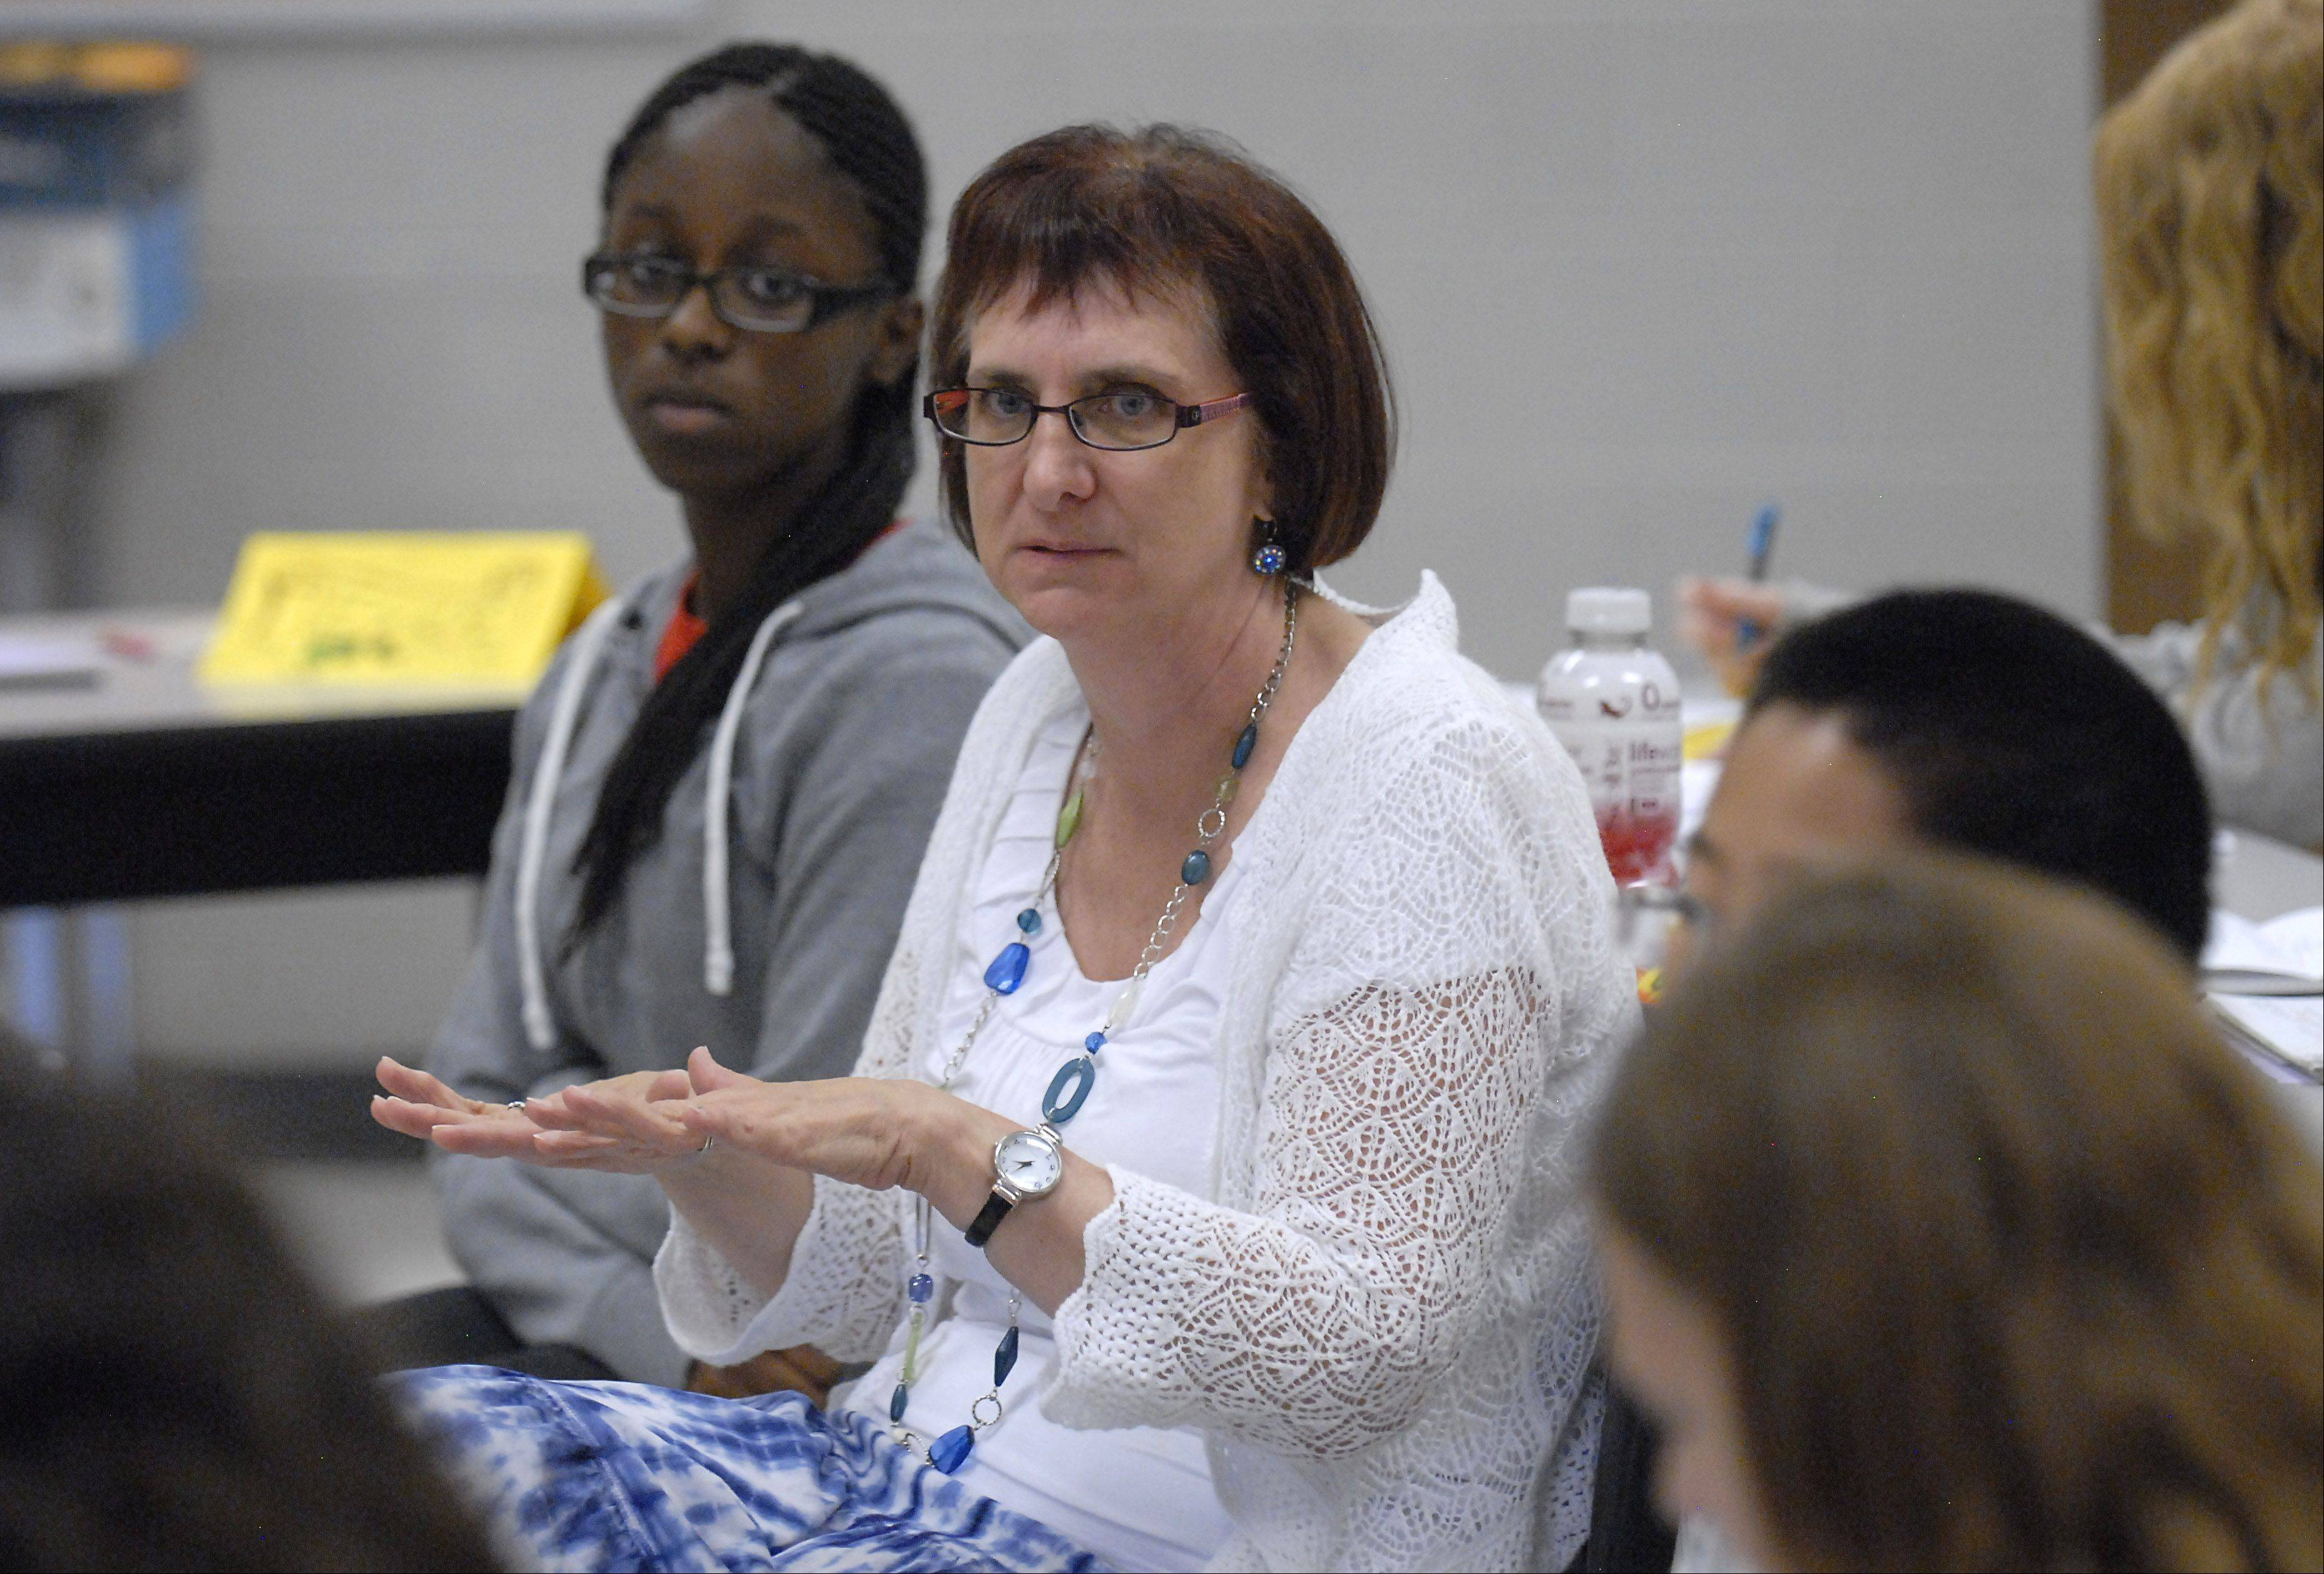 Author Kathi Baron of Oak Park works with students in the College Writing Academy during last year's Kids College program at Elgin Community College. The class was for students 11 to 15.